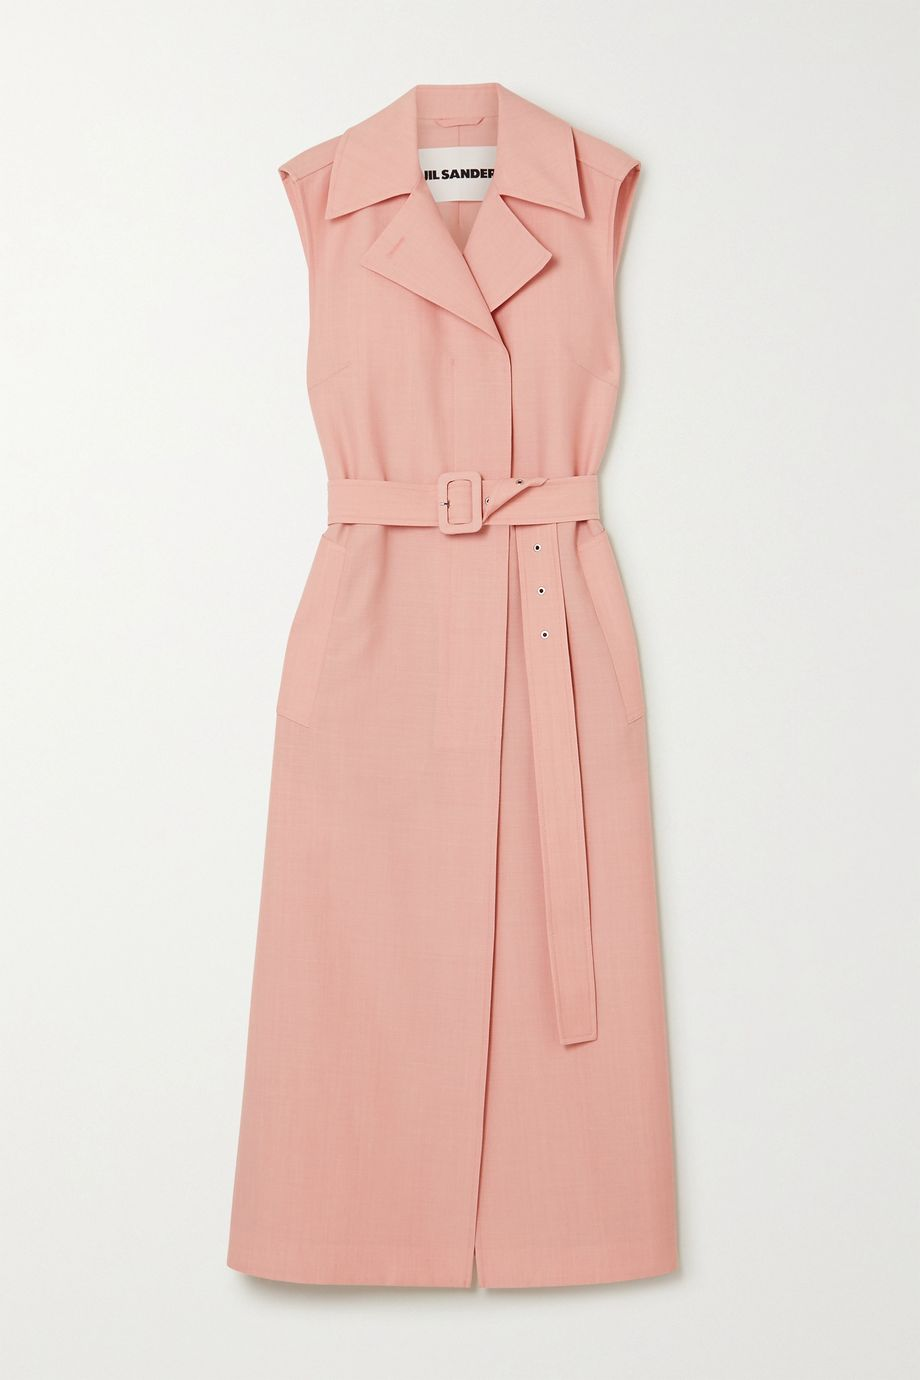 Jil Sander Belted wool and mohair-blend midi dress